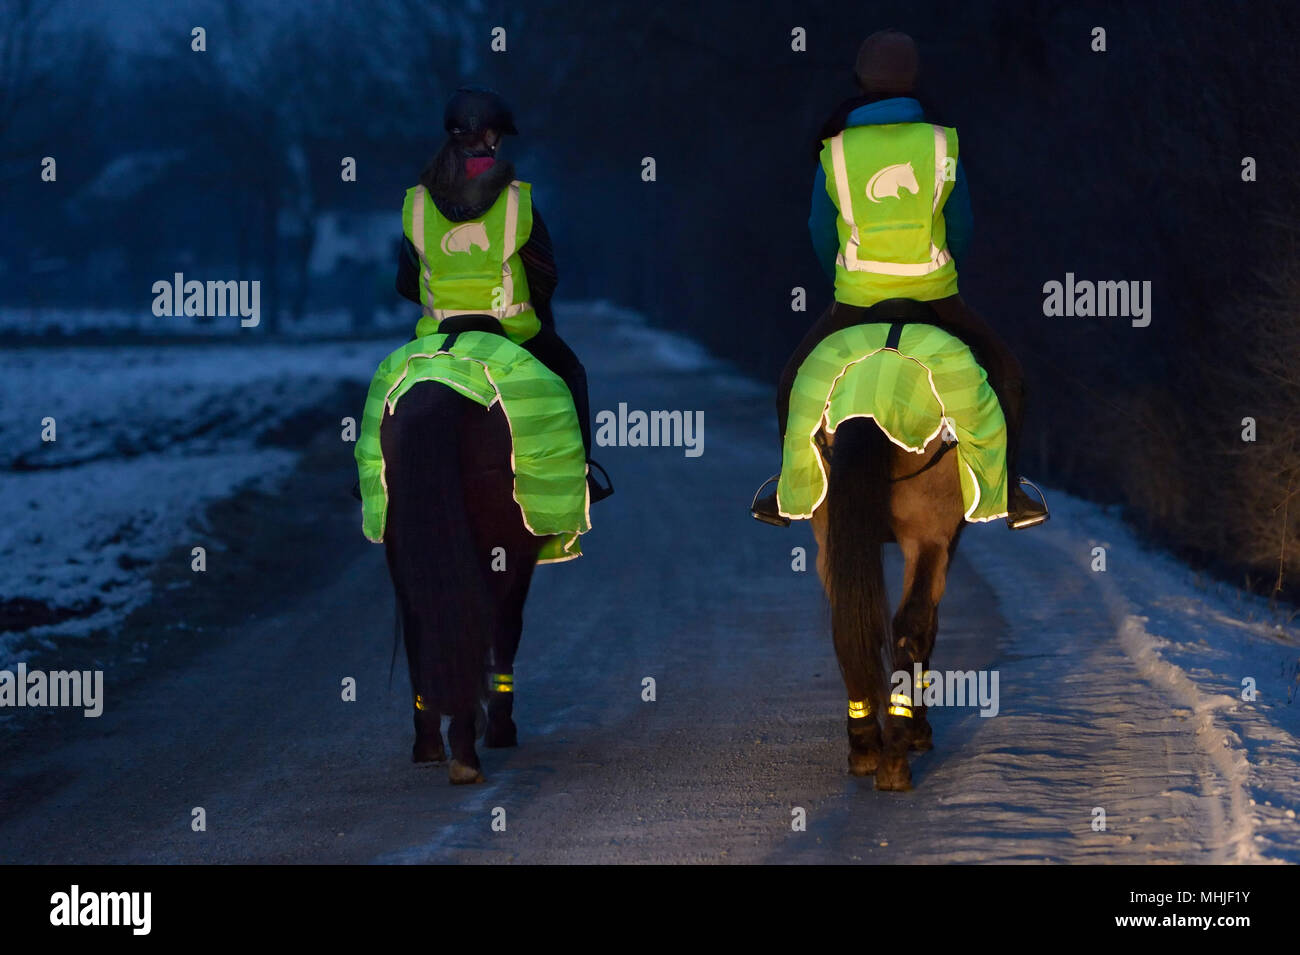 Ride out in the evening wearing reflective items for safety - Stock Image